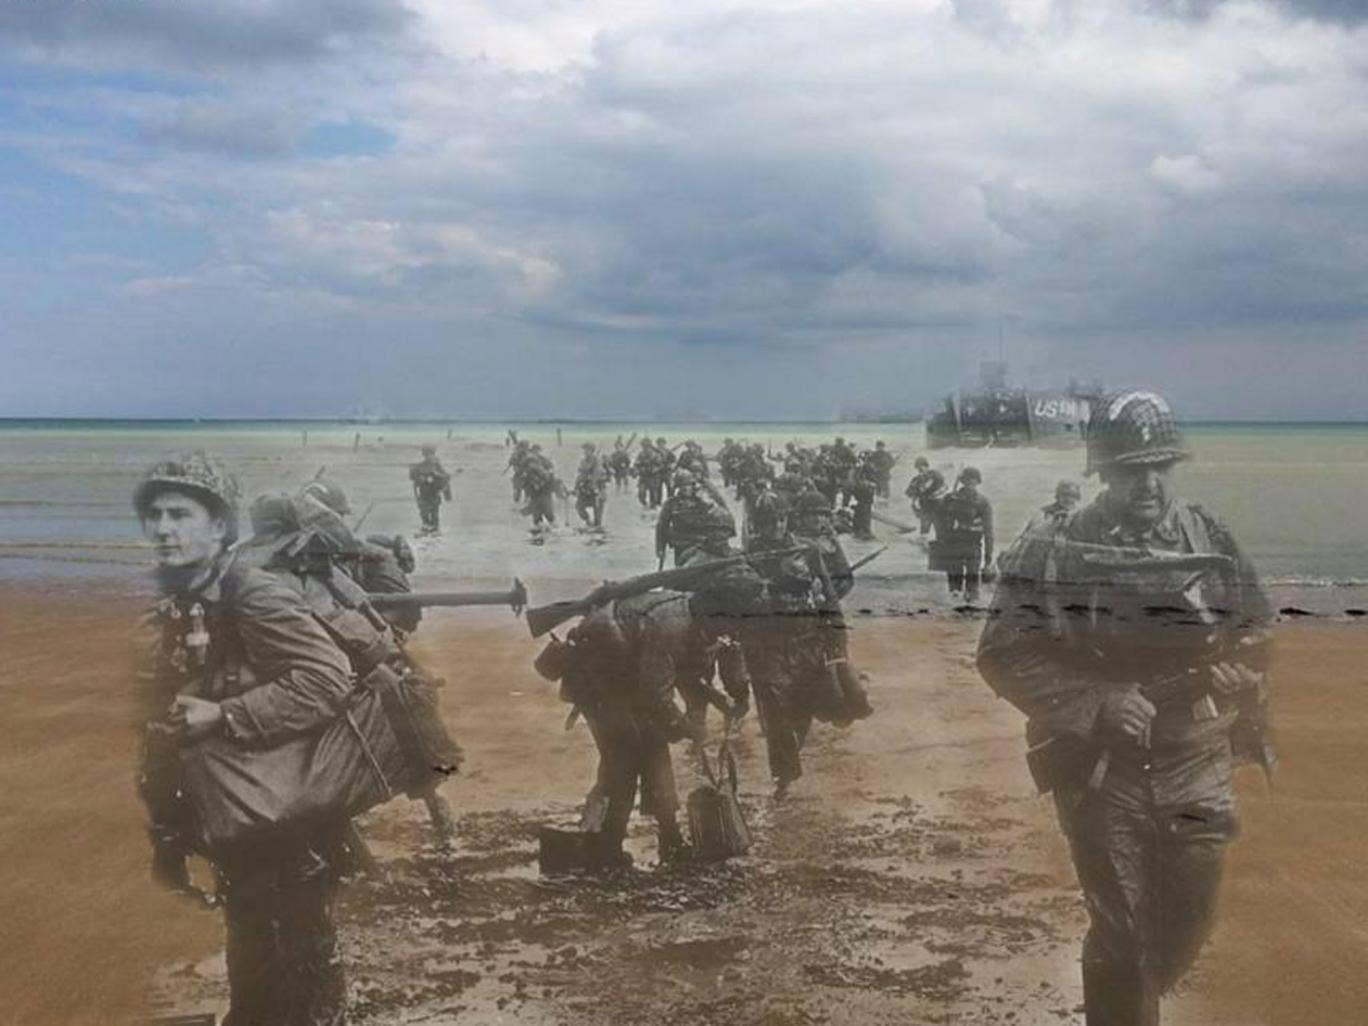 Landing Day: Special engineer brigade landing on Omaha beach D-Day afternoon 1944 – 2014